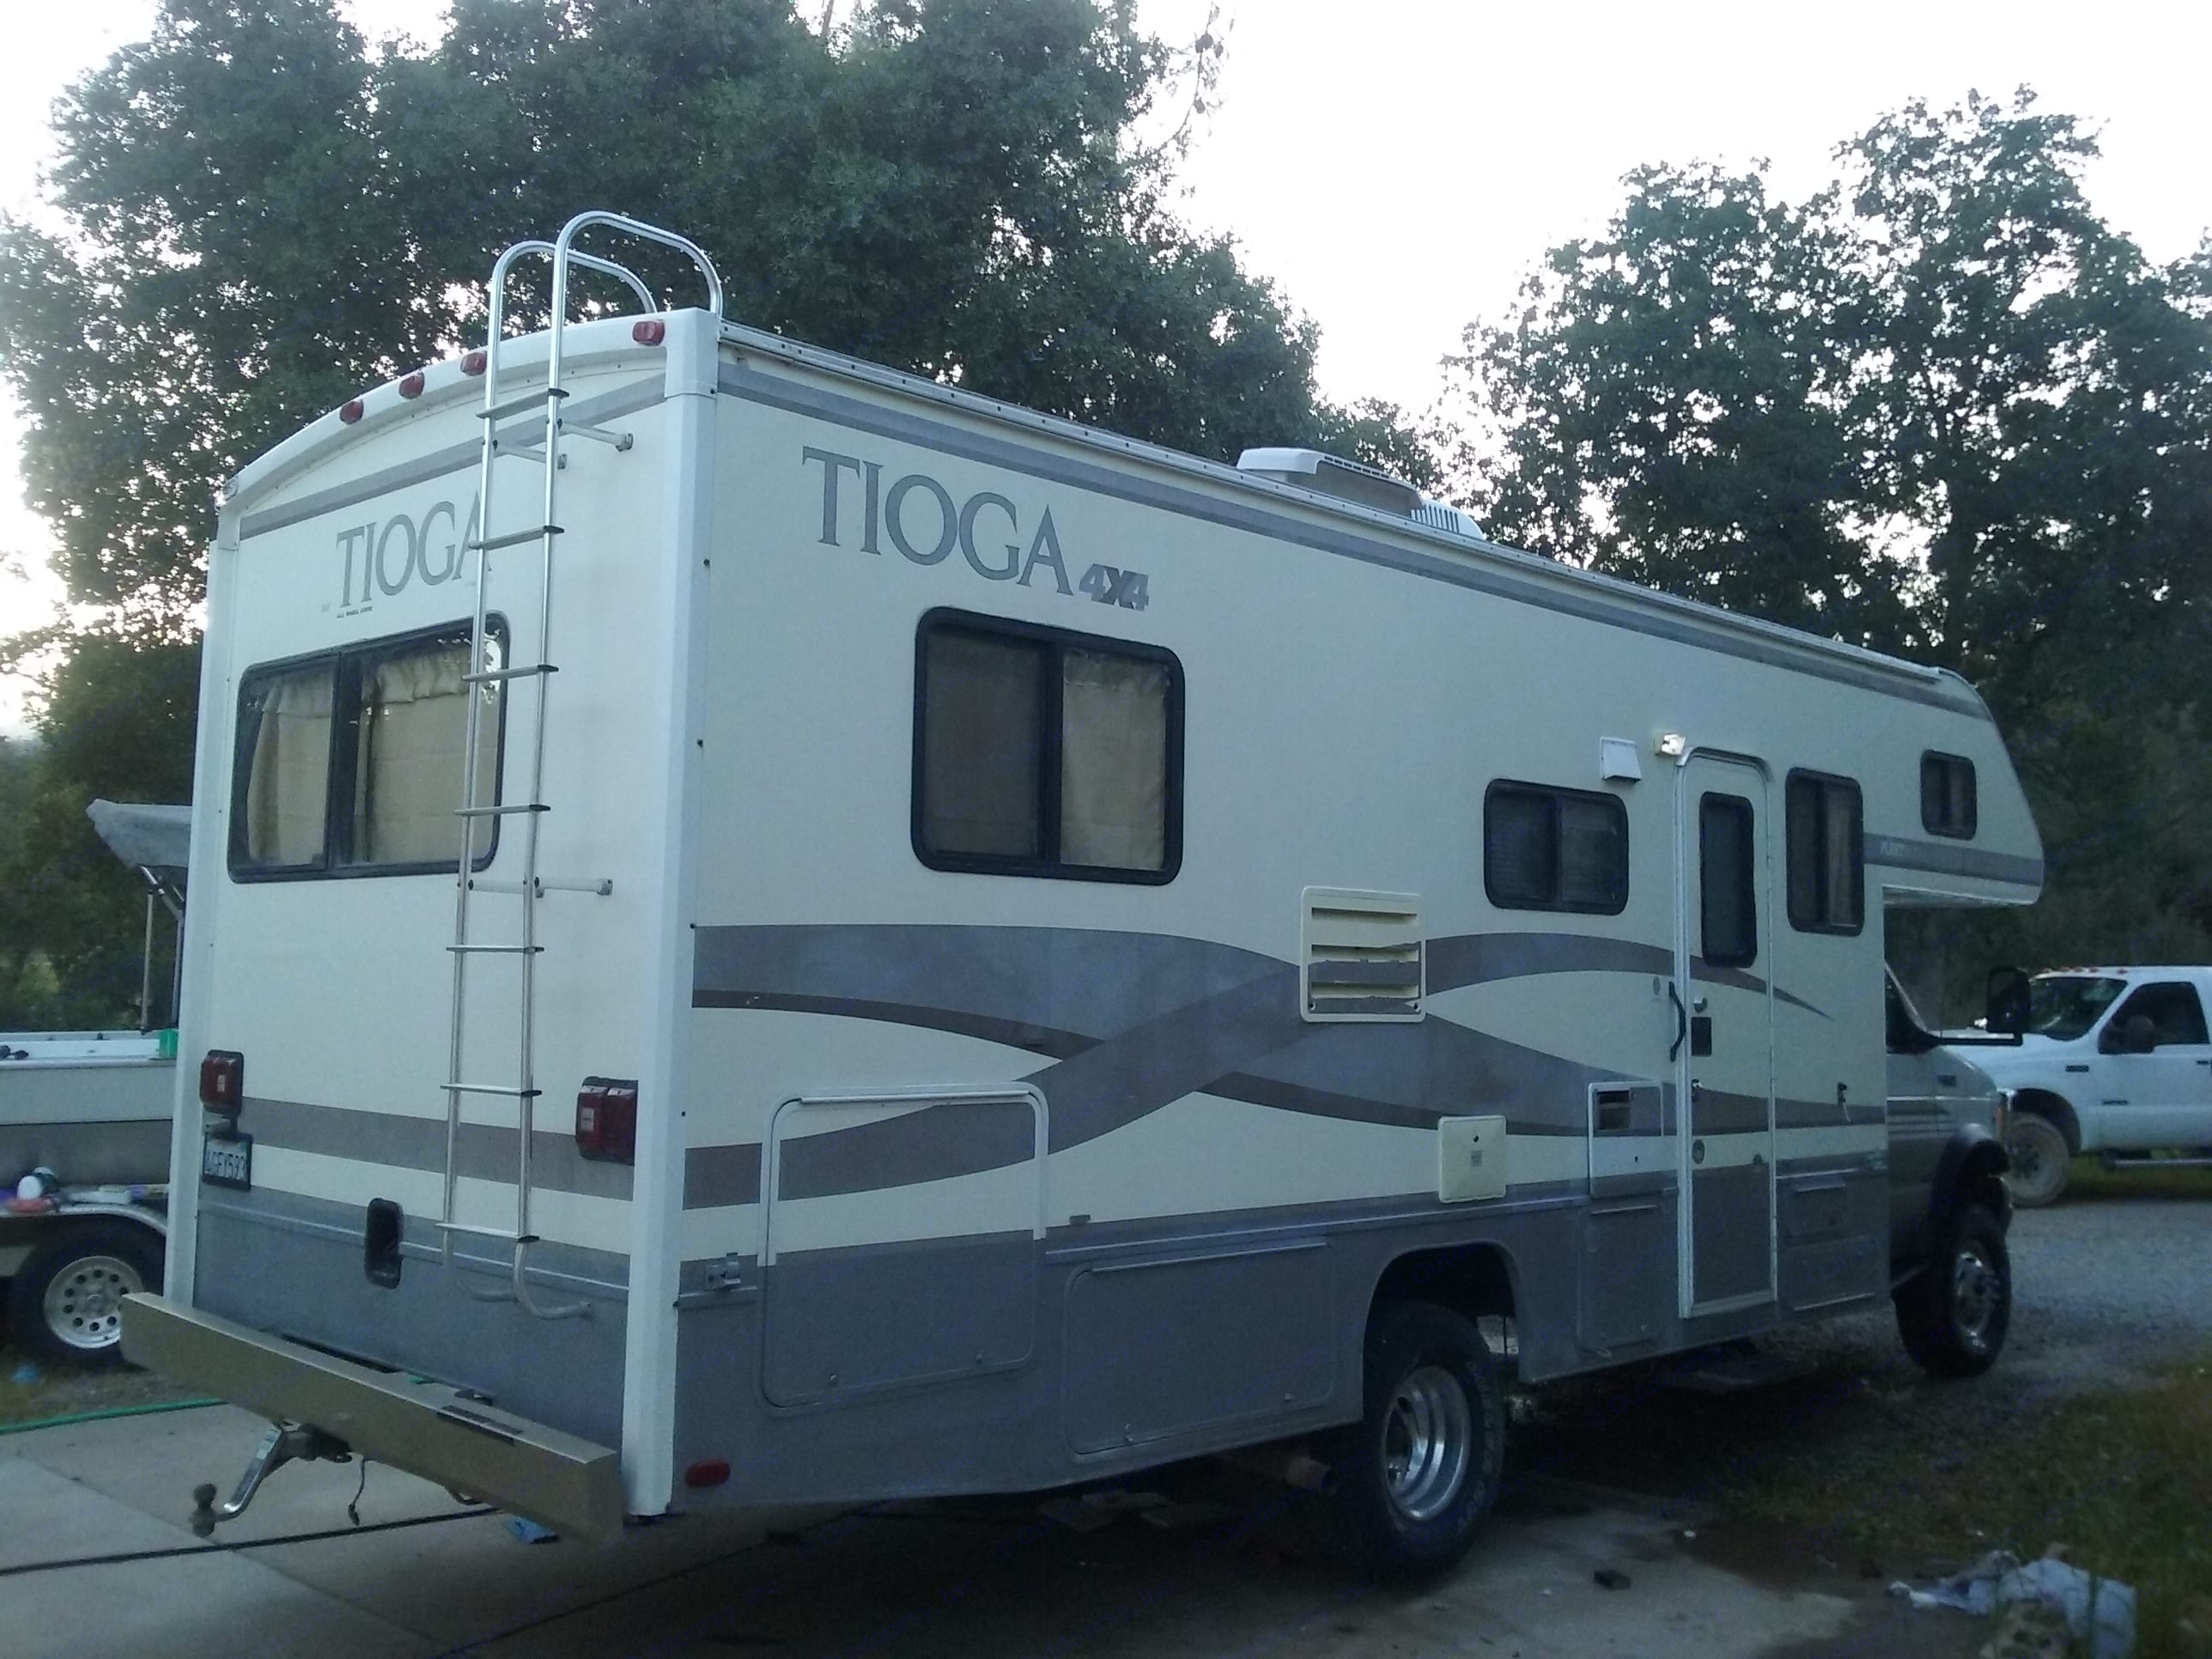 Youtube Video Tour https://www.youtube.com/watch?v=cnF33oJTYCo&feature=youtu.be . Fleetwood Tioga 2000